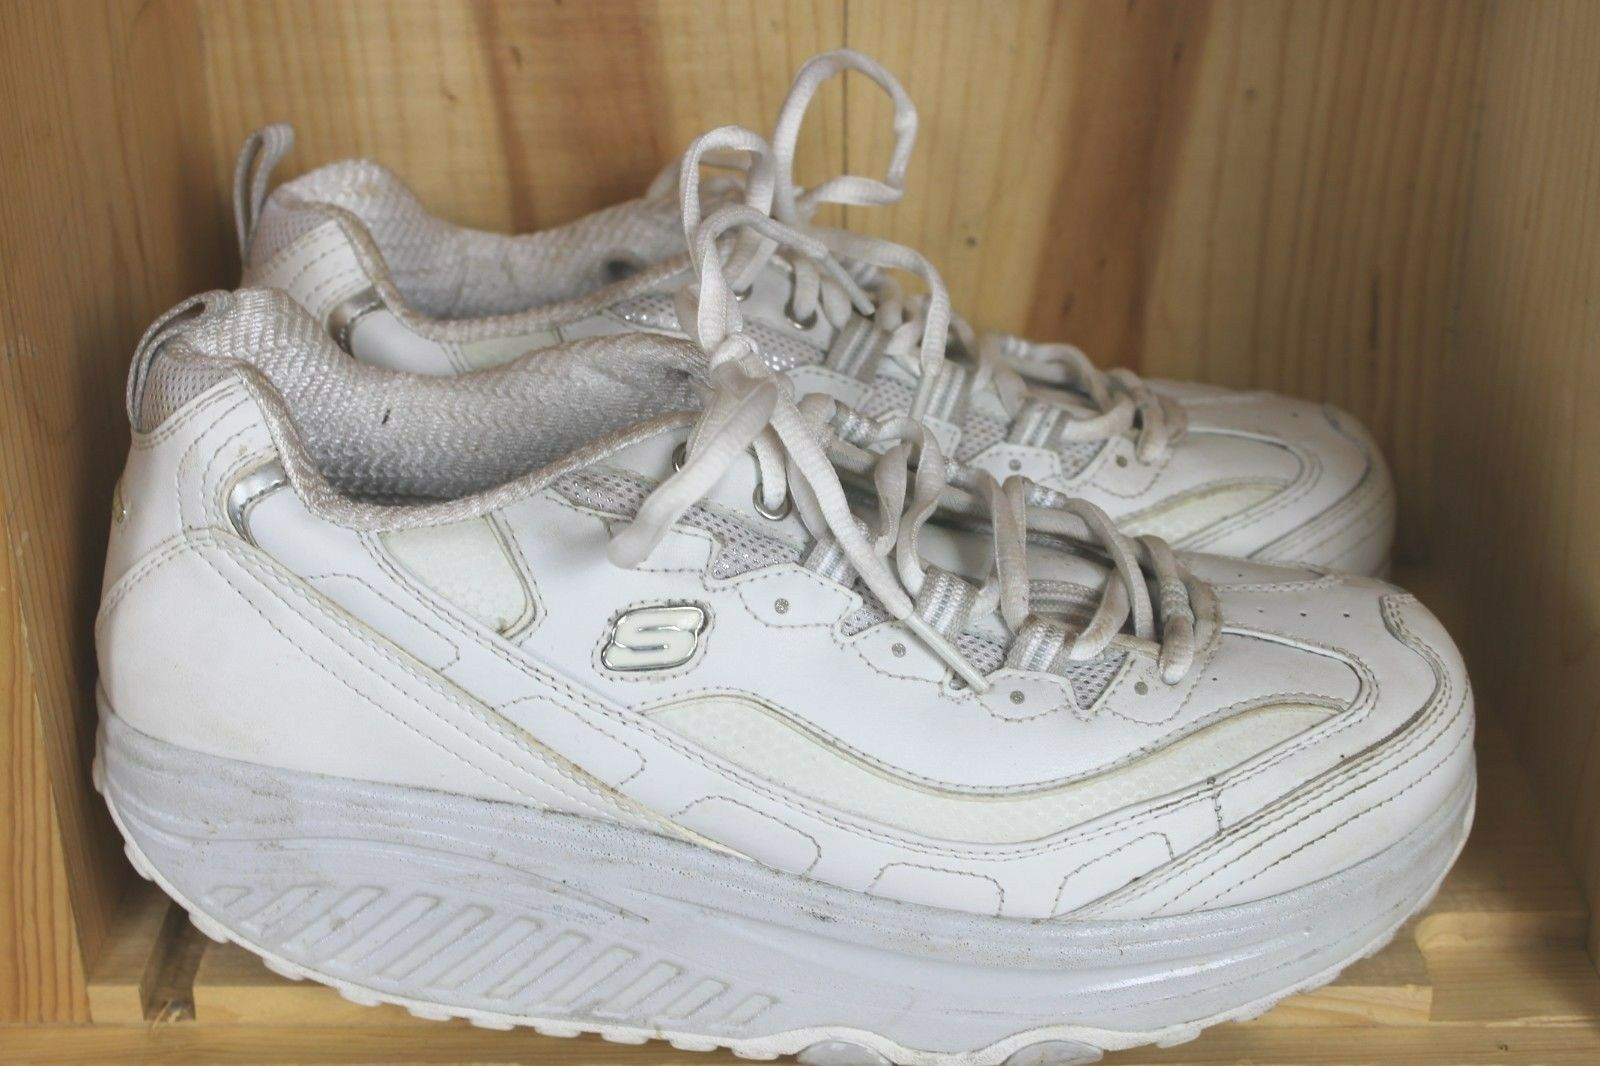 Skechers Shape Ups Leder Fitness Athletic Schuhes Weiß Leder Ups sz 9.5 Damenschuhe 11800 1fb108